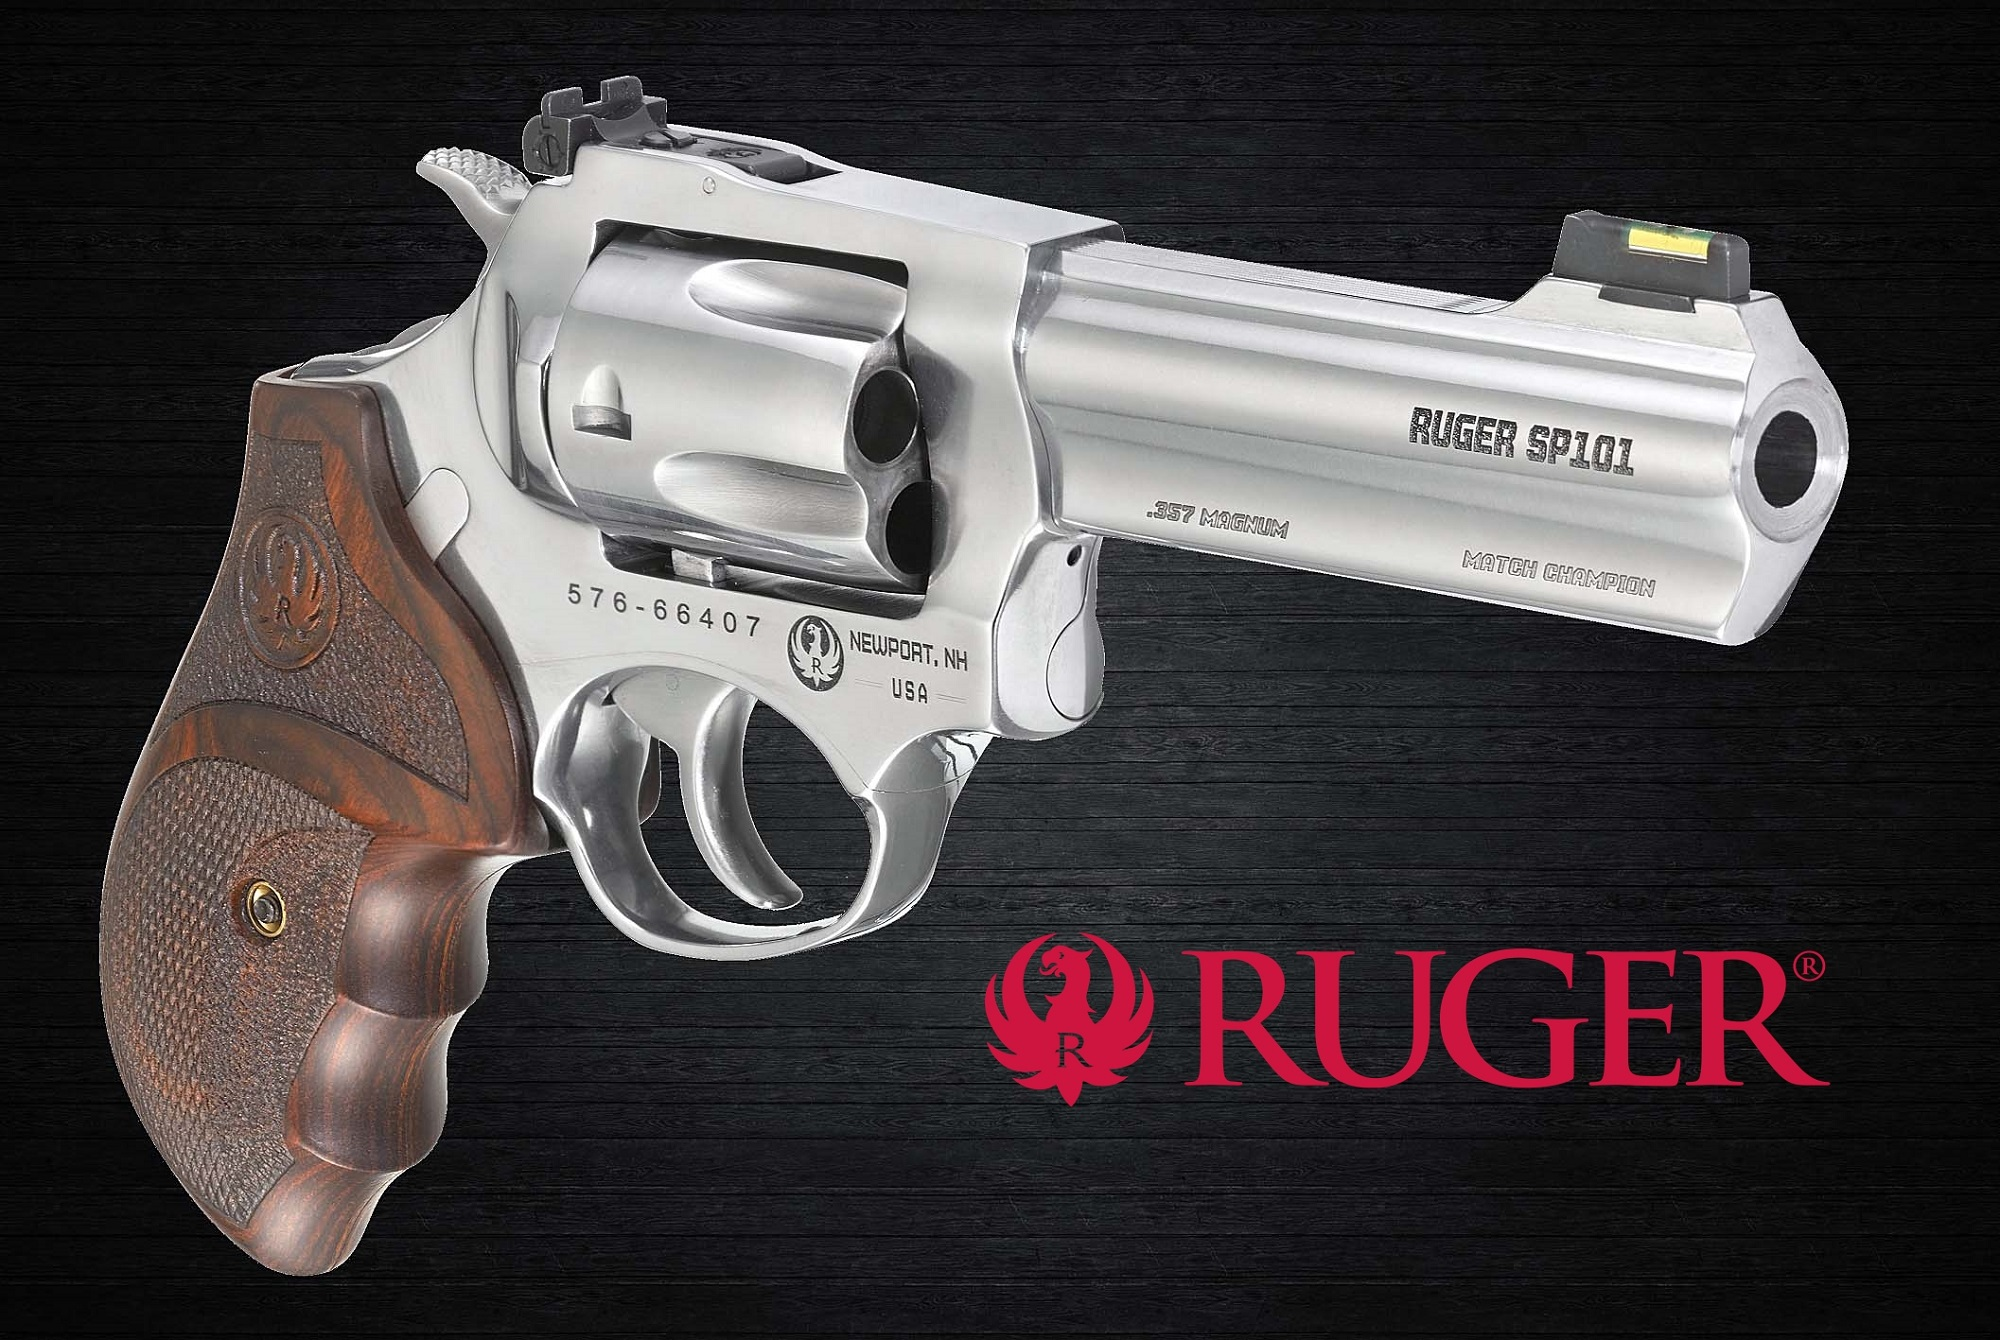 Ruger introduces the SP101 Match Champion double-action revolver